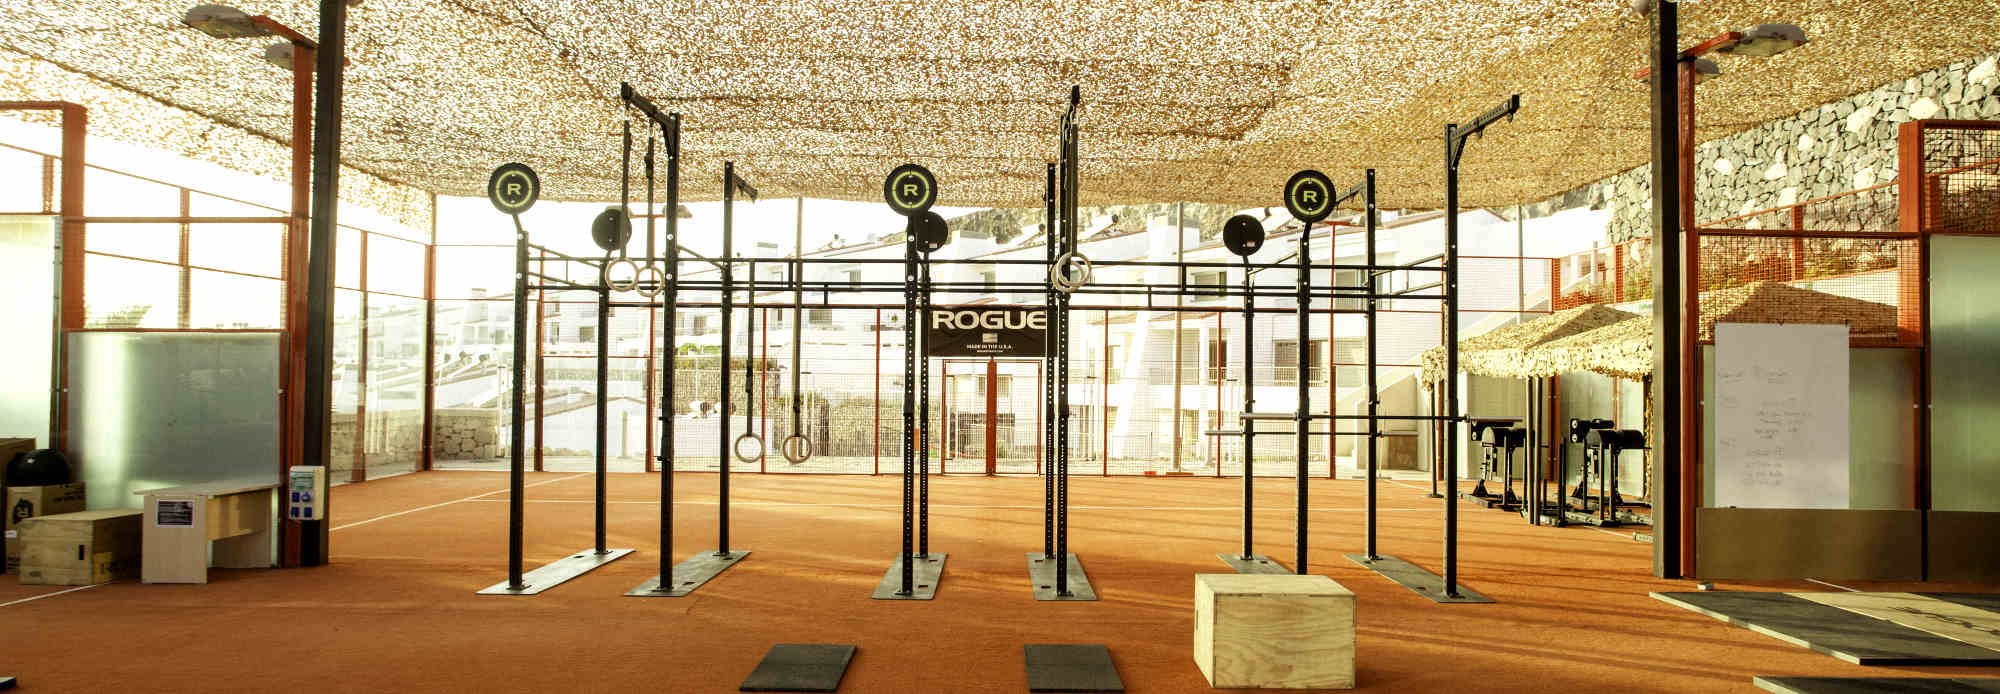 Individual Fitness Camps in our Cross-training Box fully equipped with Rogue Fitness and Eleiko stuff